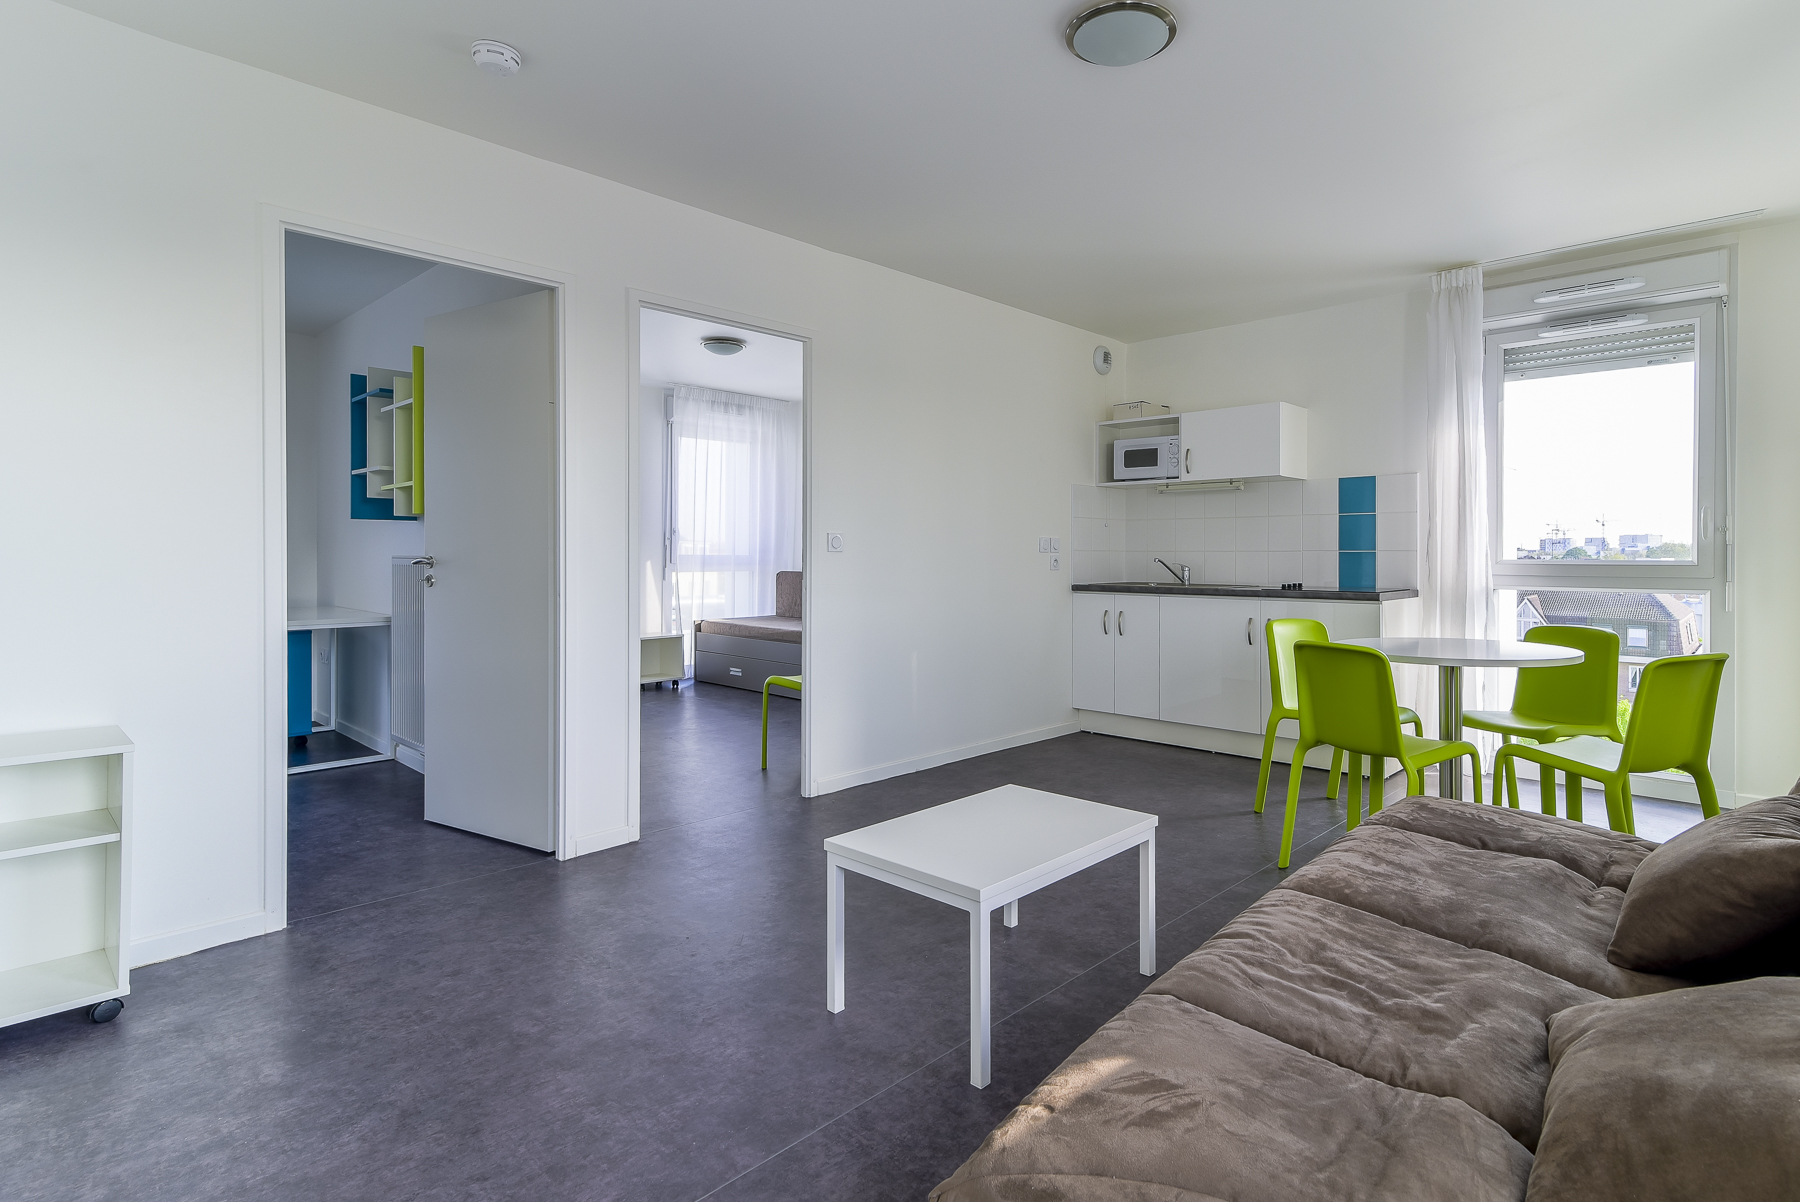 Residence Maison Blanche Lille résidence étudiante maison blanche – logement étudiant - le